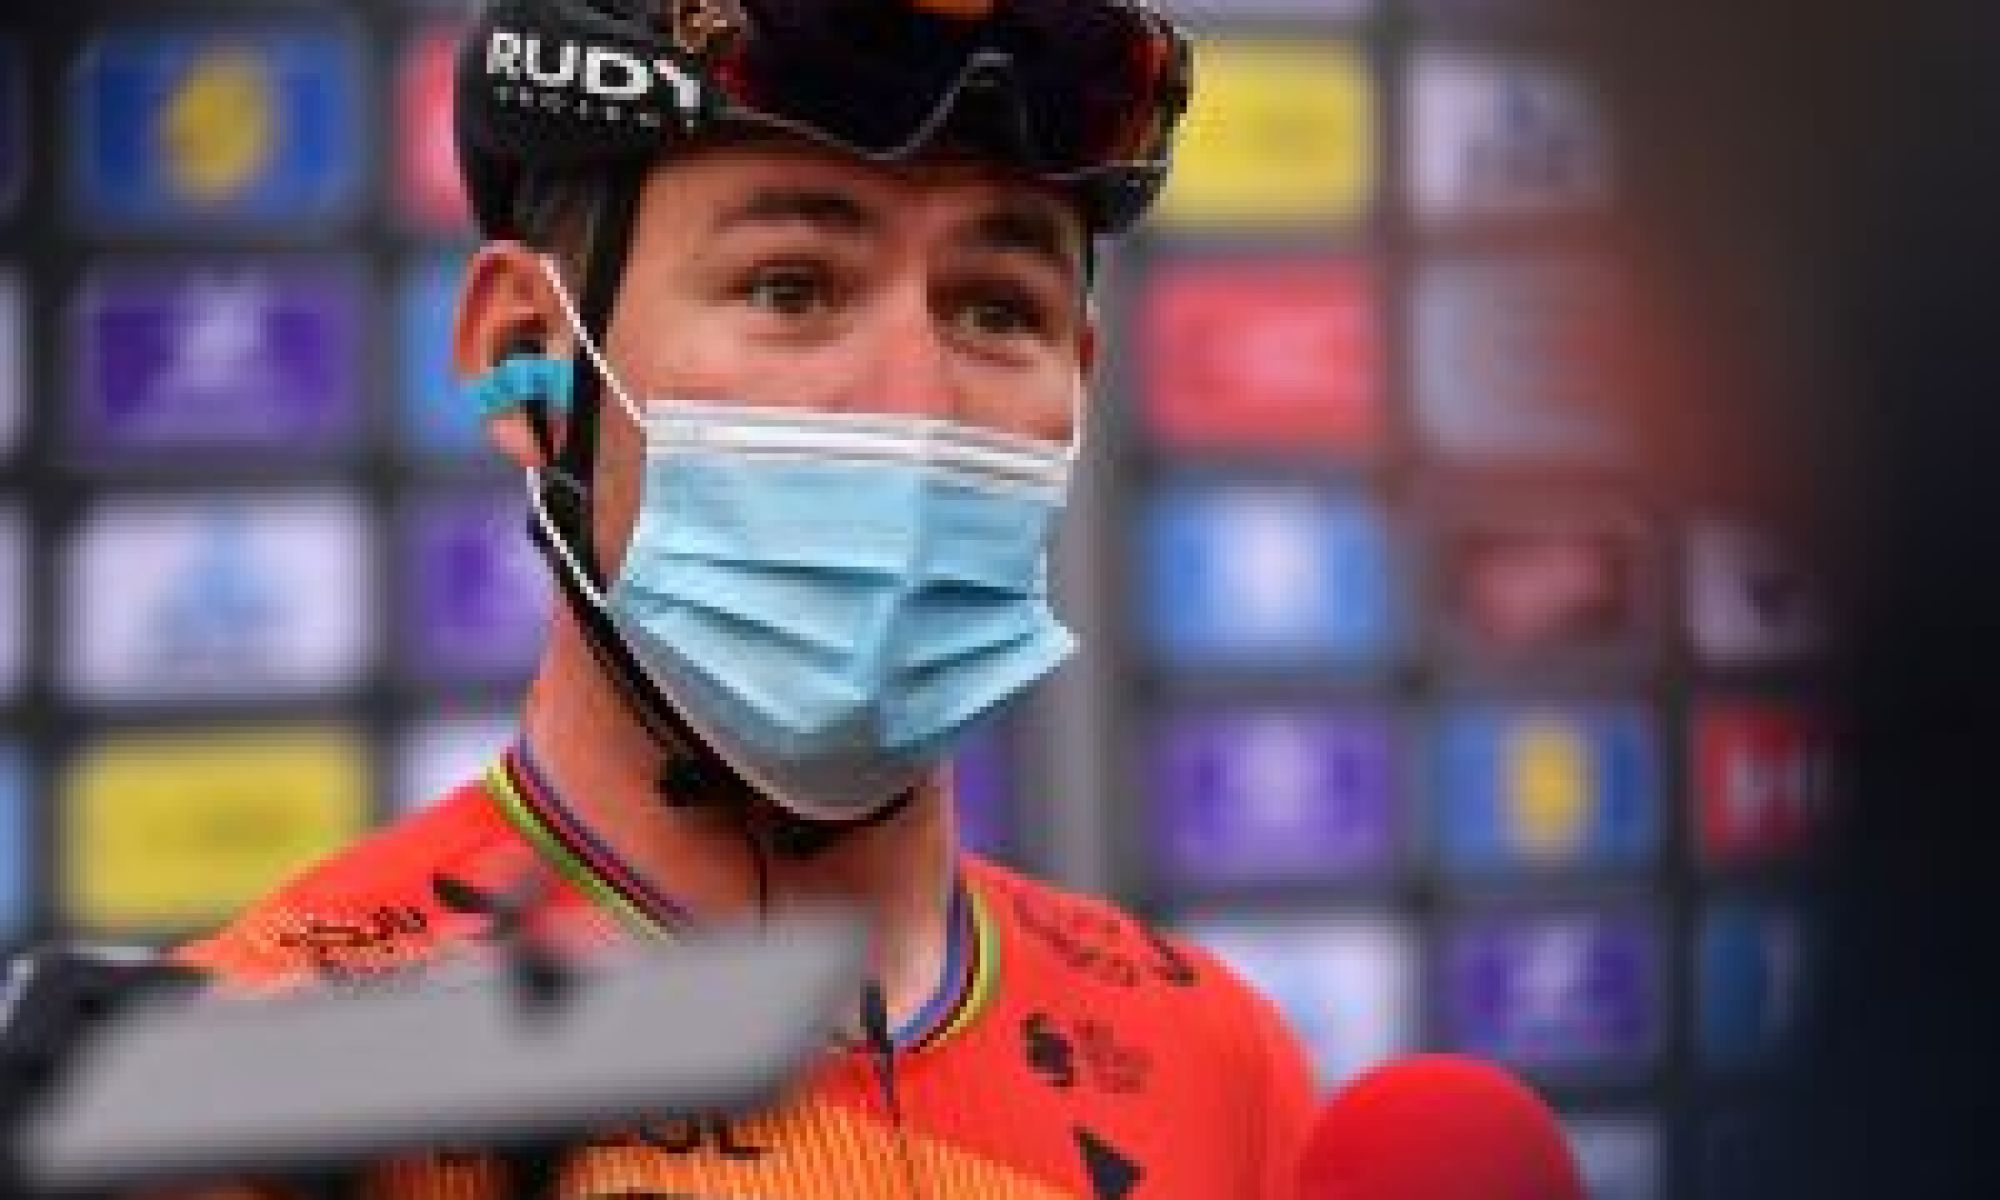 Mark Cavendish says rumours of race cancellations caused the tears at Gent-Wevelgem